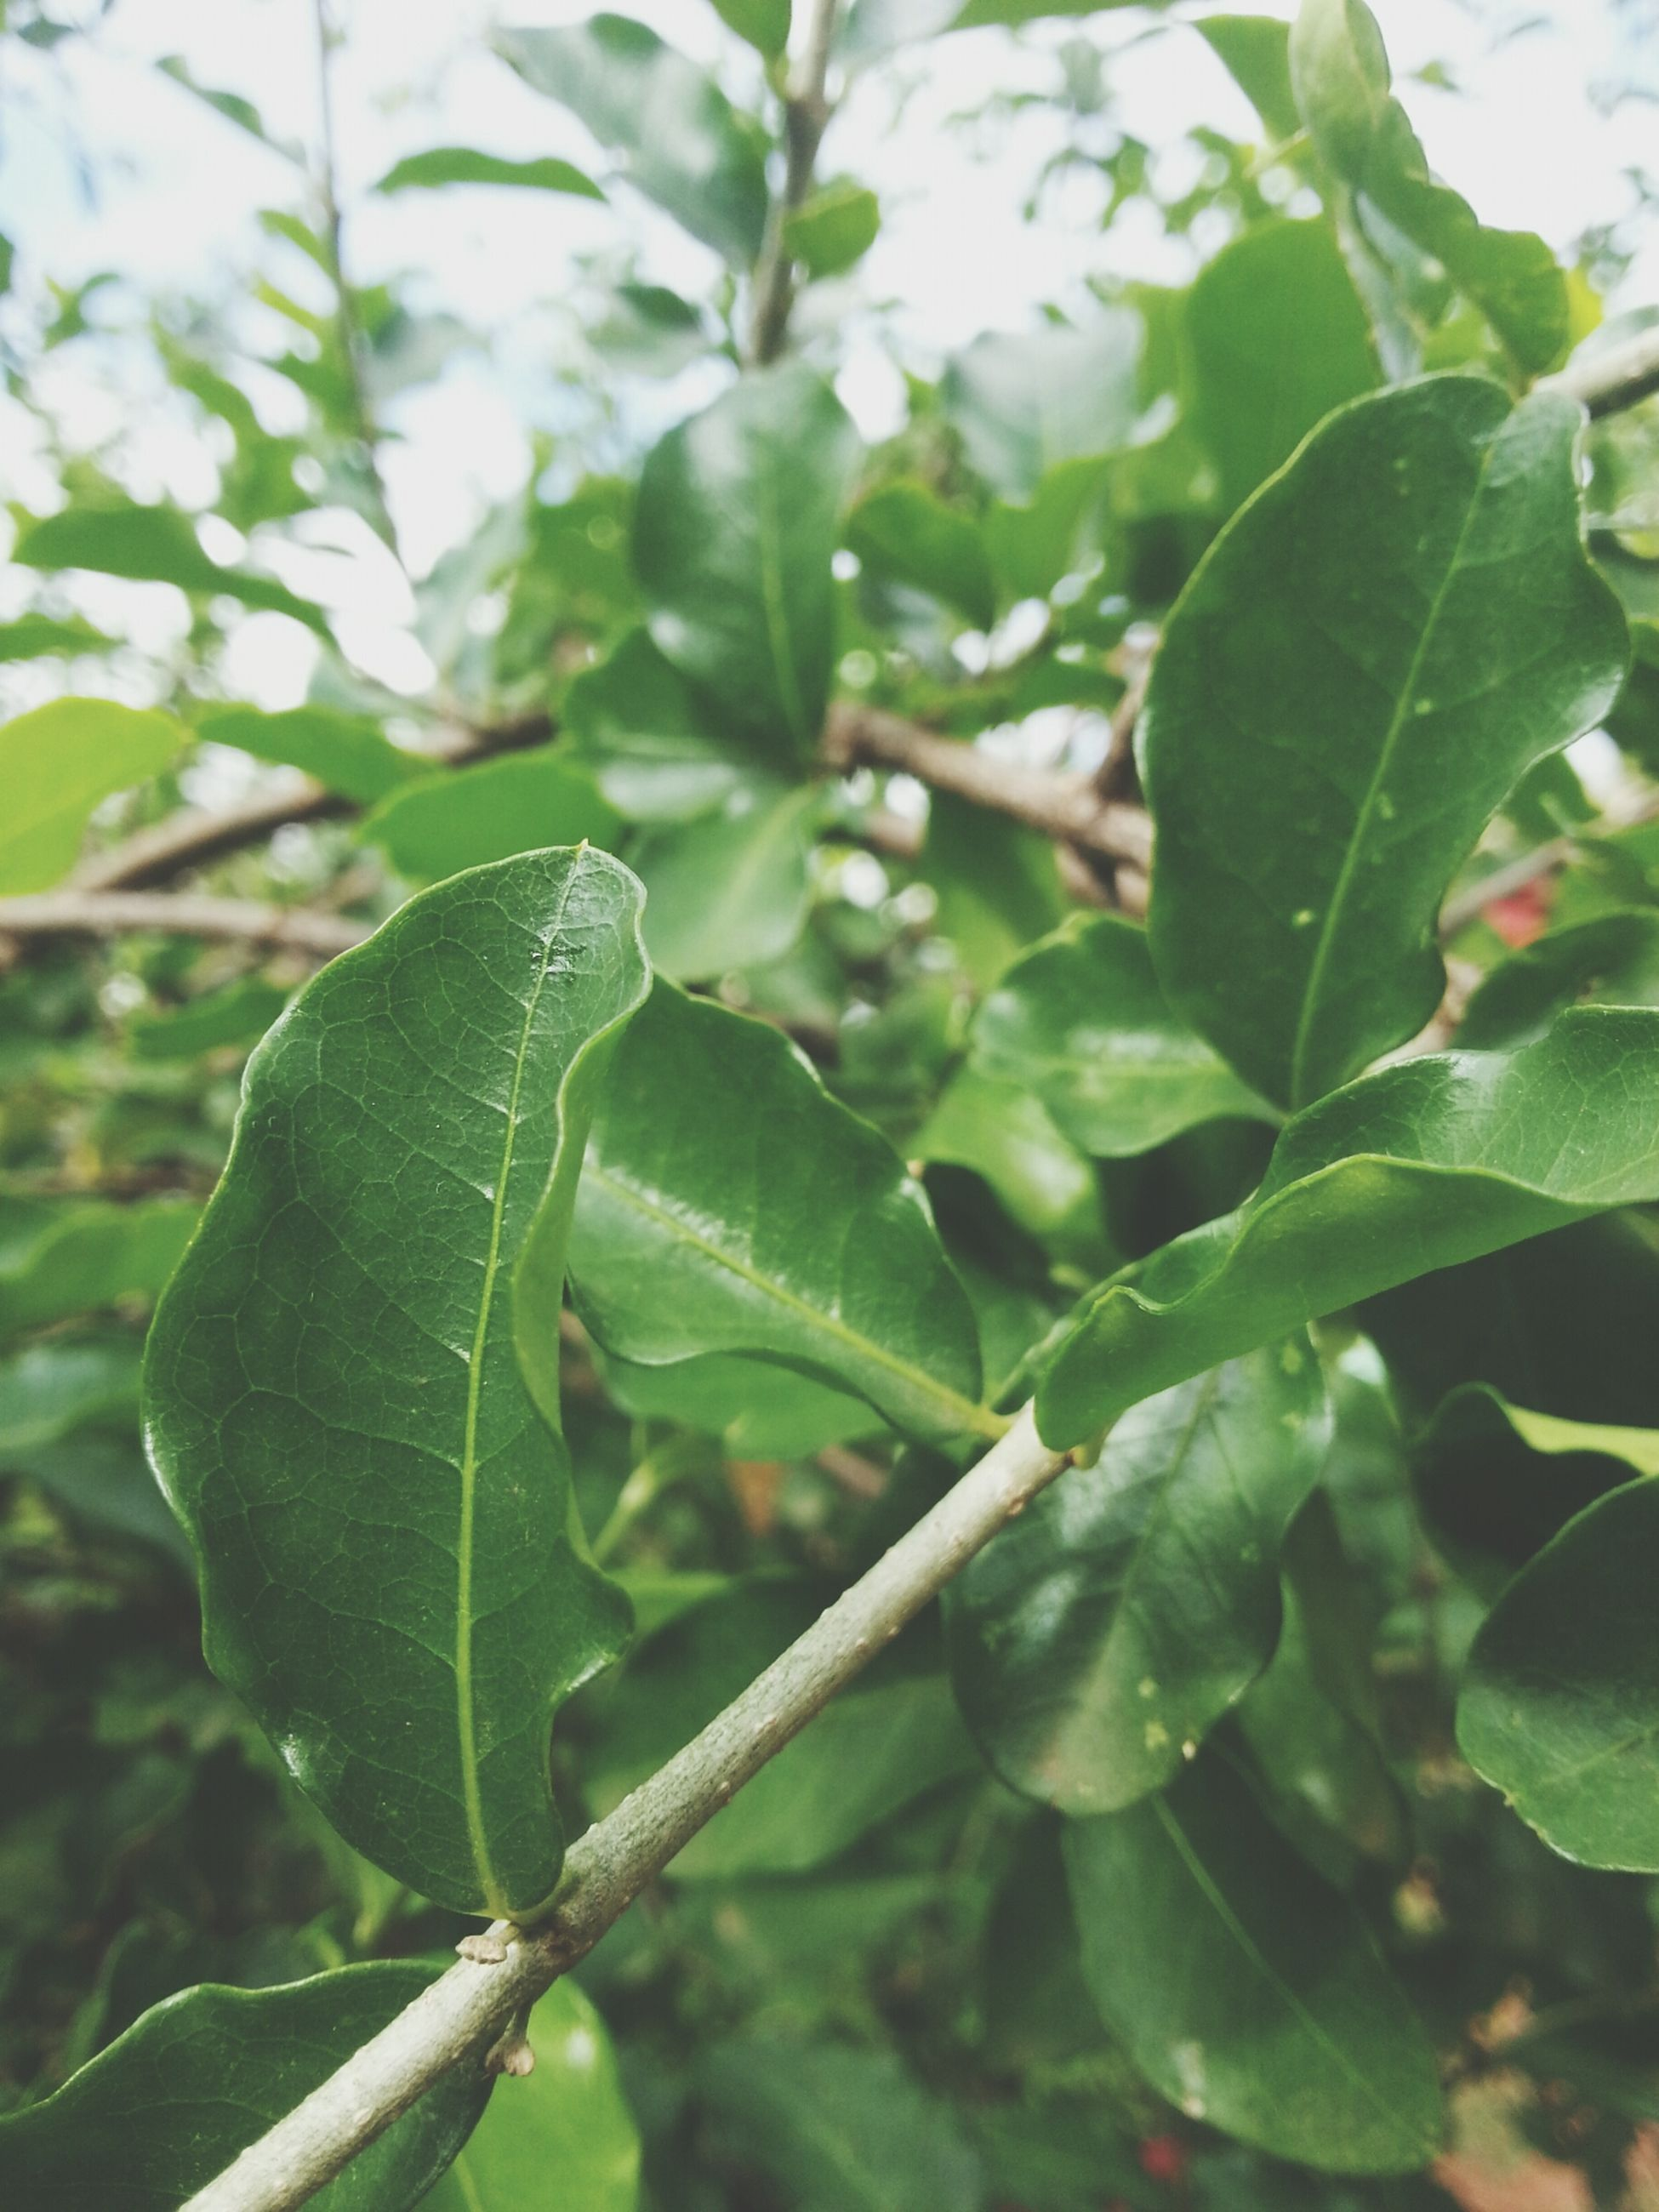 leaf, green color, focus on foreground, close-up, growth, plant, nature, animals in the wild, one animal, branch, wildlife, animal themes, tree, outdoors, day, selective focus, no people, leaf vein, beauty in nature, green